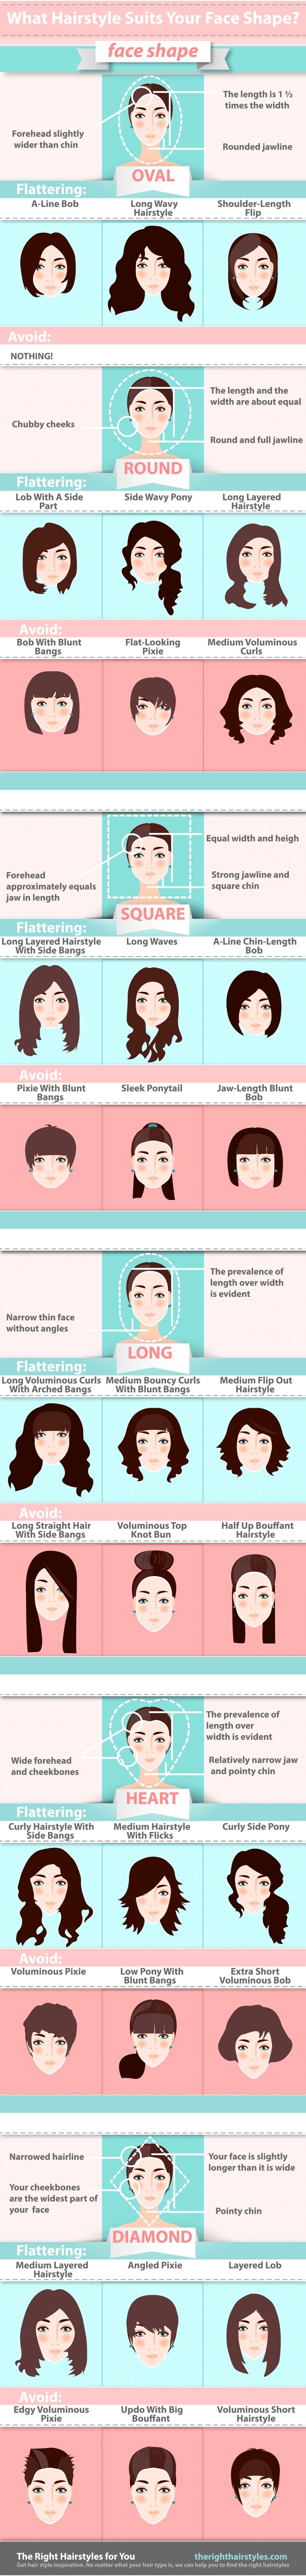 how to choose a haircut and hairstyle according to your face shape?